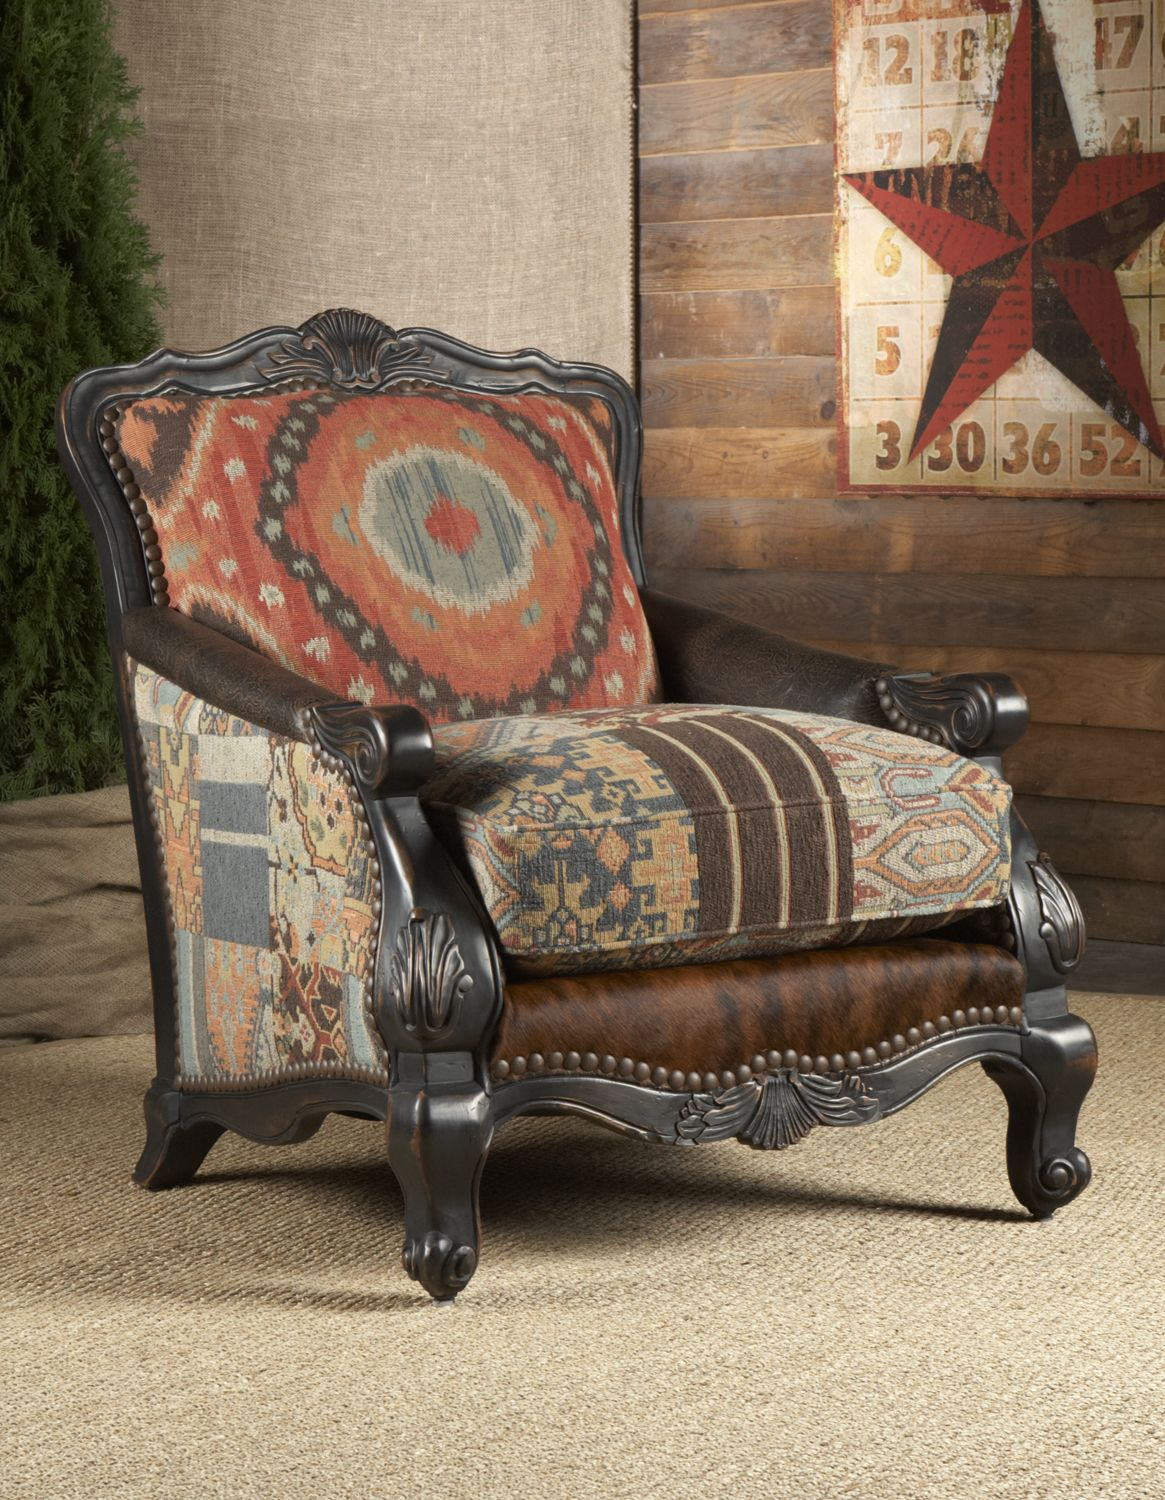 Western living room furniture - Southwestern Buckley Chair Chairs Ottomans Living Room Rustic Furniture